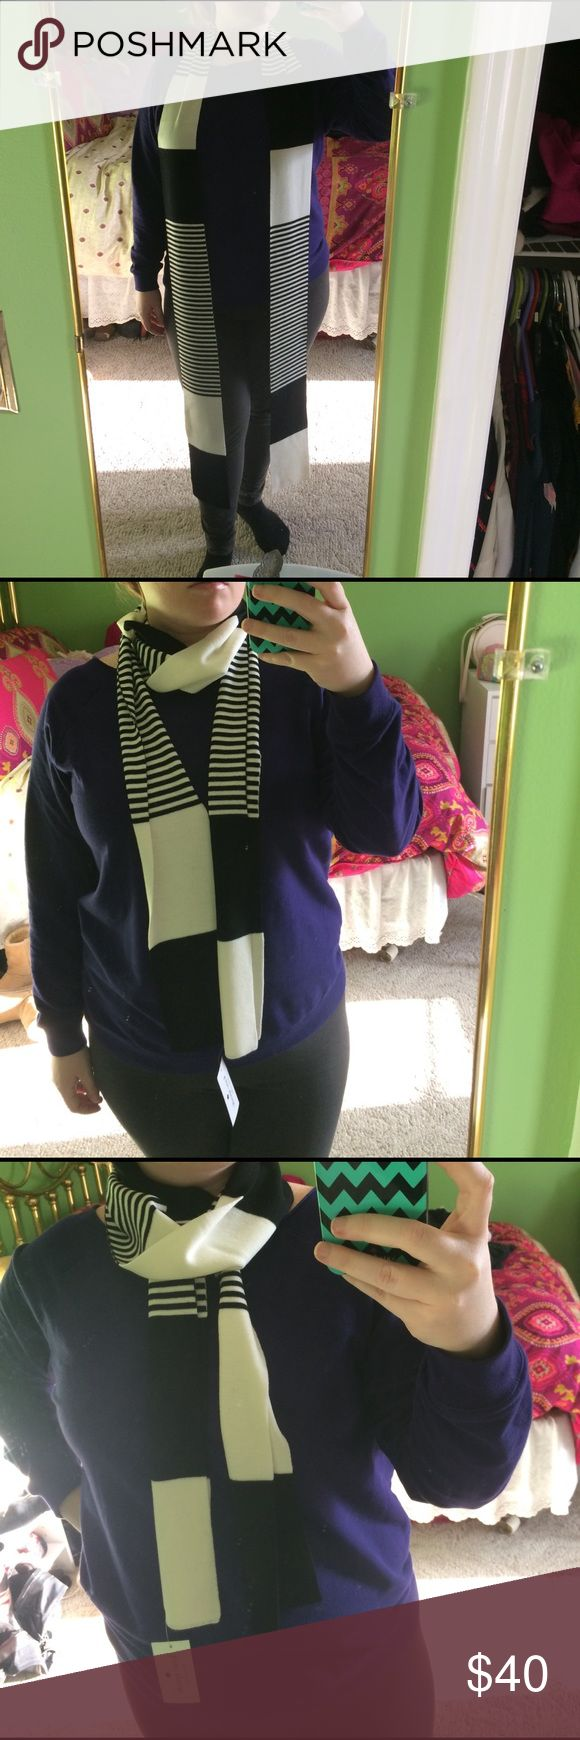 Kate spade black and white scarf Kate spade black and white scarf. Perfect for spring!!! Lightweight kate spade Accessories Scarves & Wraps